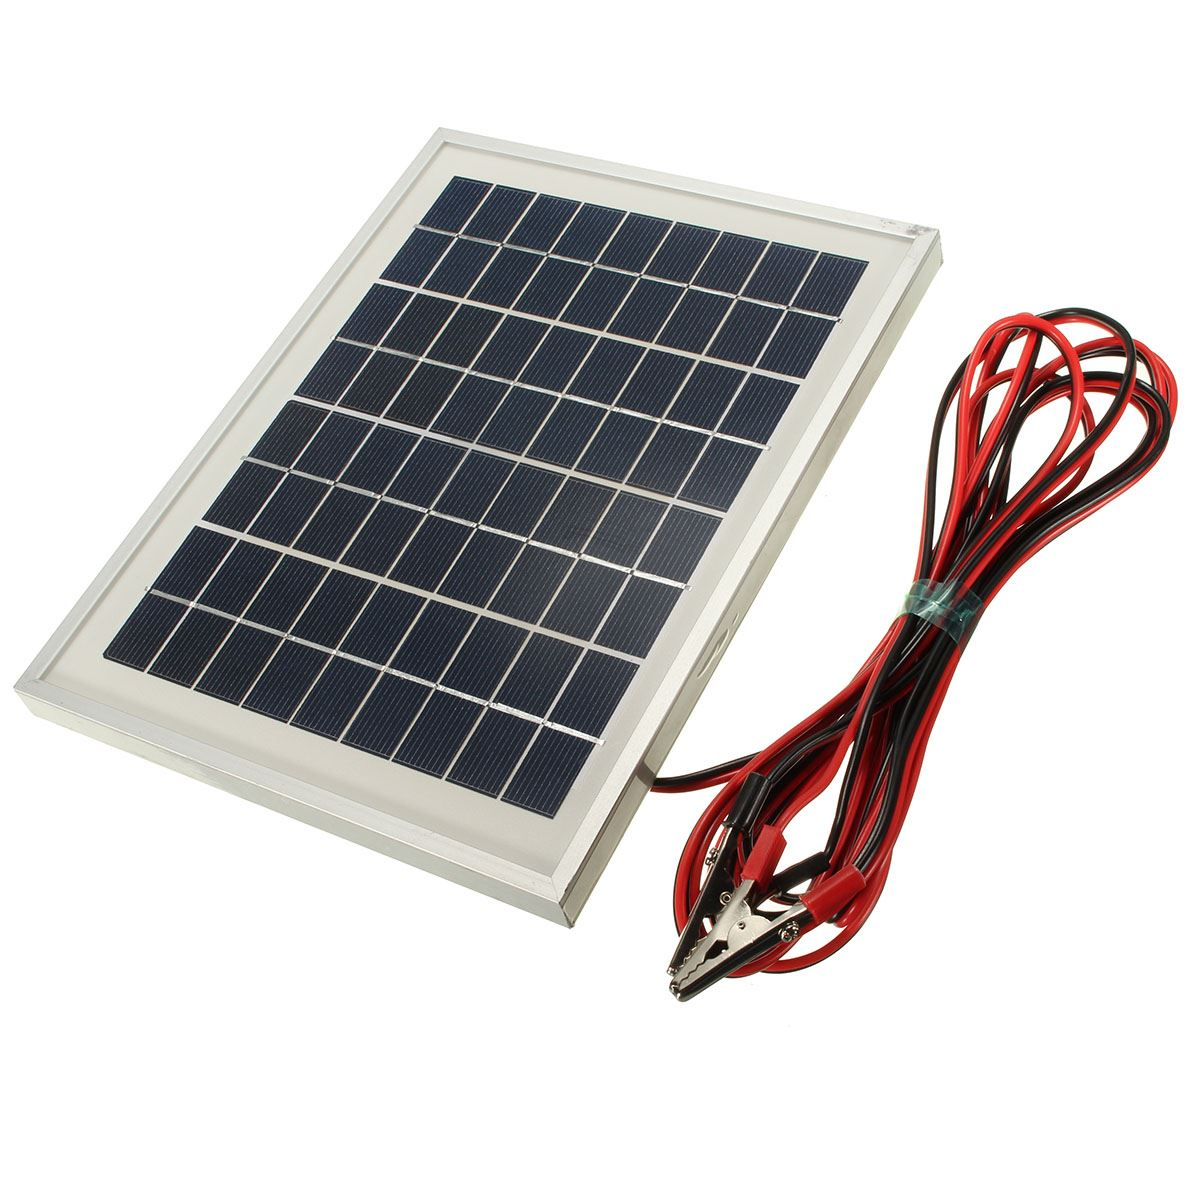 5W 12V PolyCrystalline Cells Solar Panel storge energy charger DIY Solar Module with Block Diode 2x